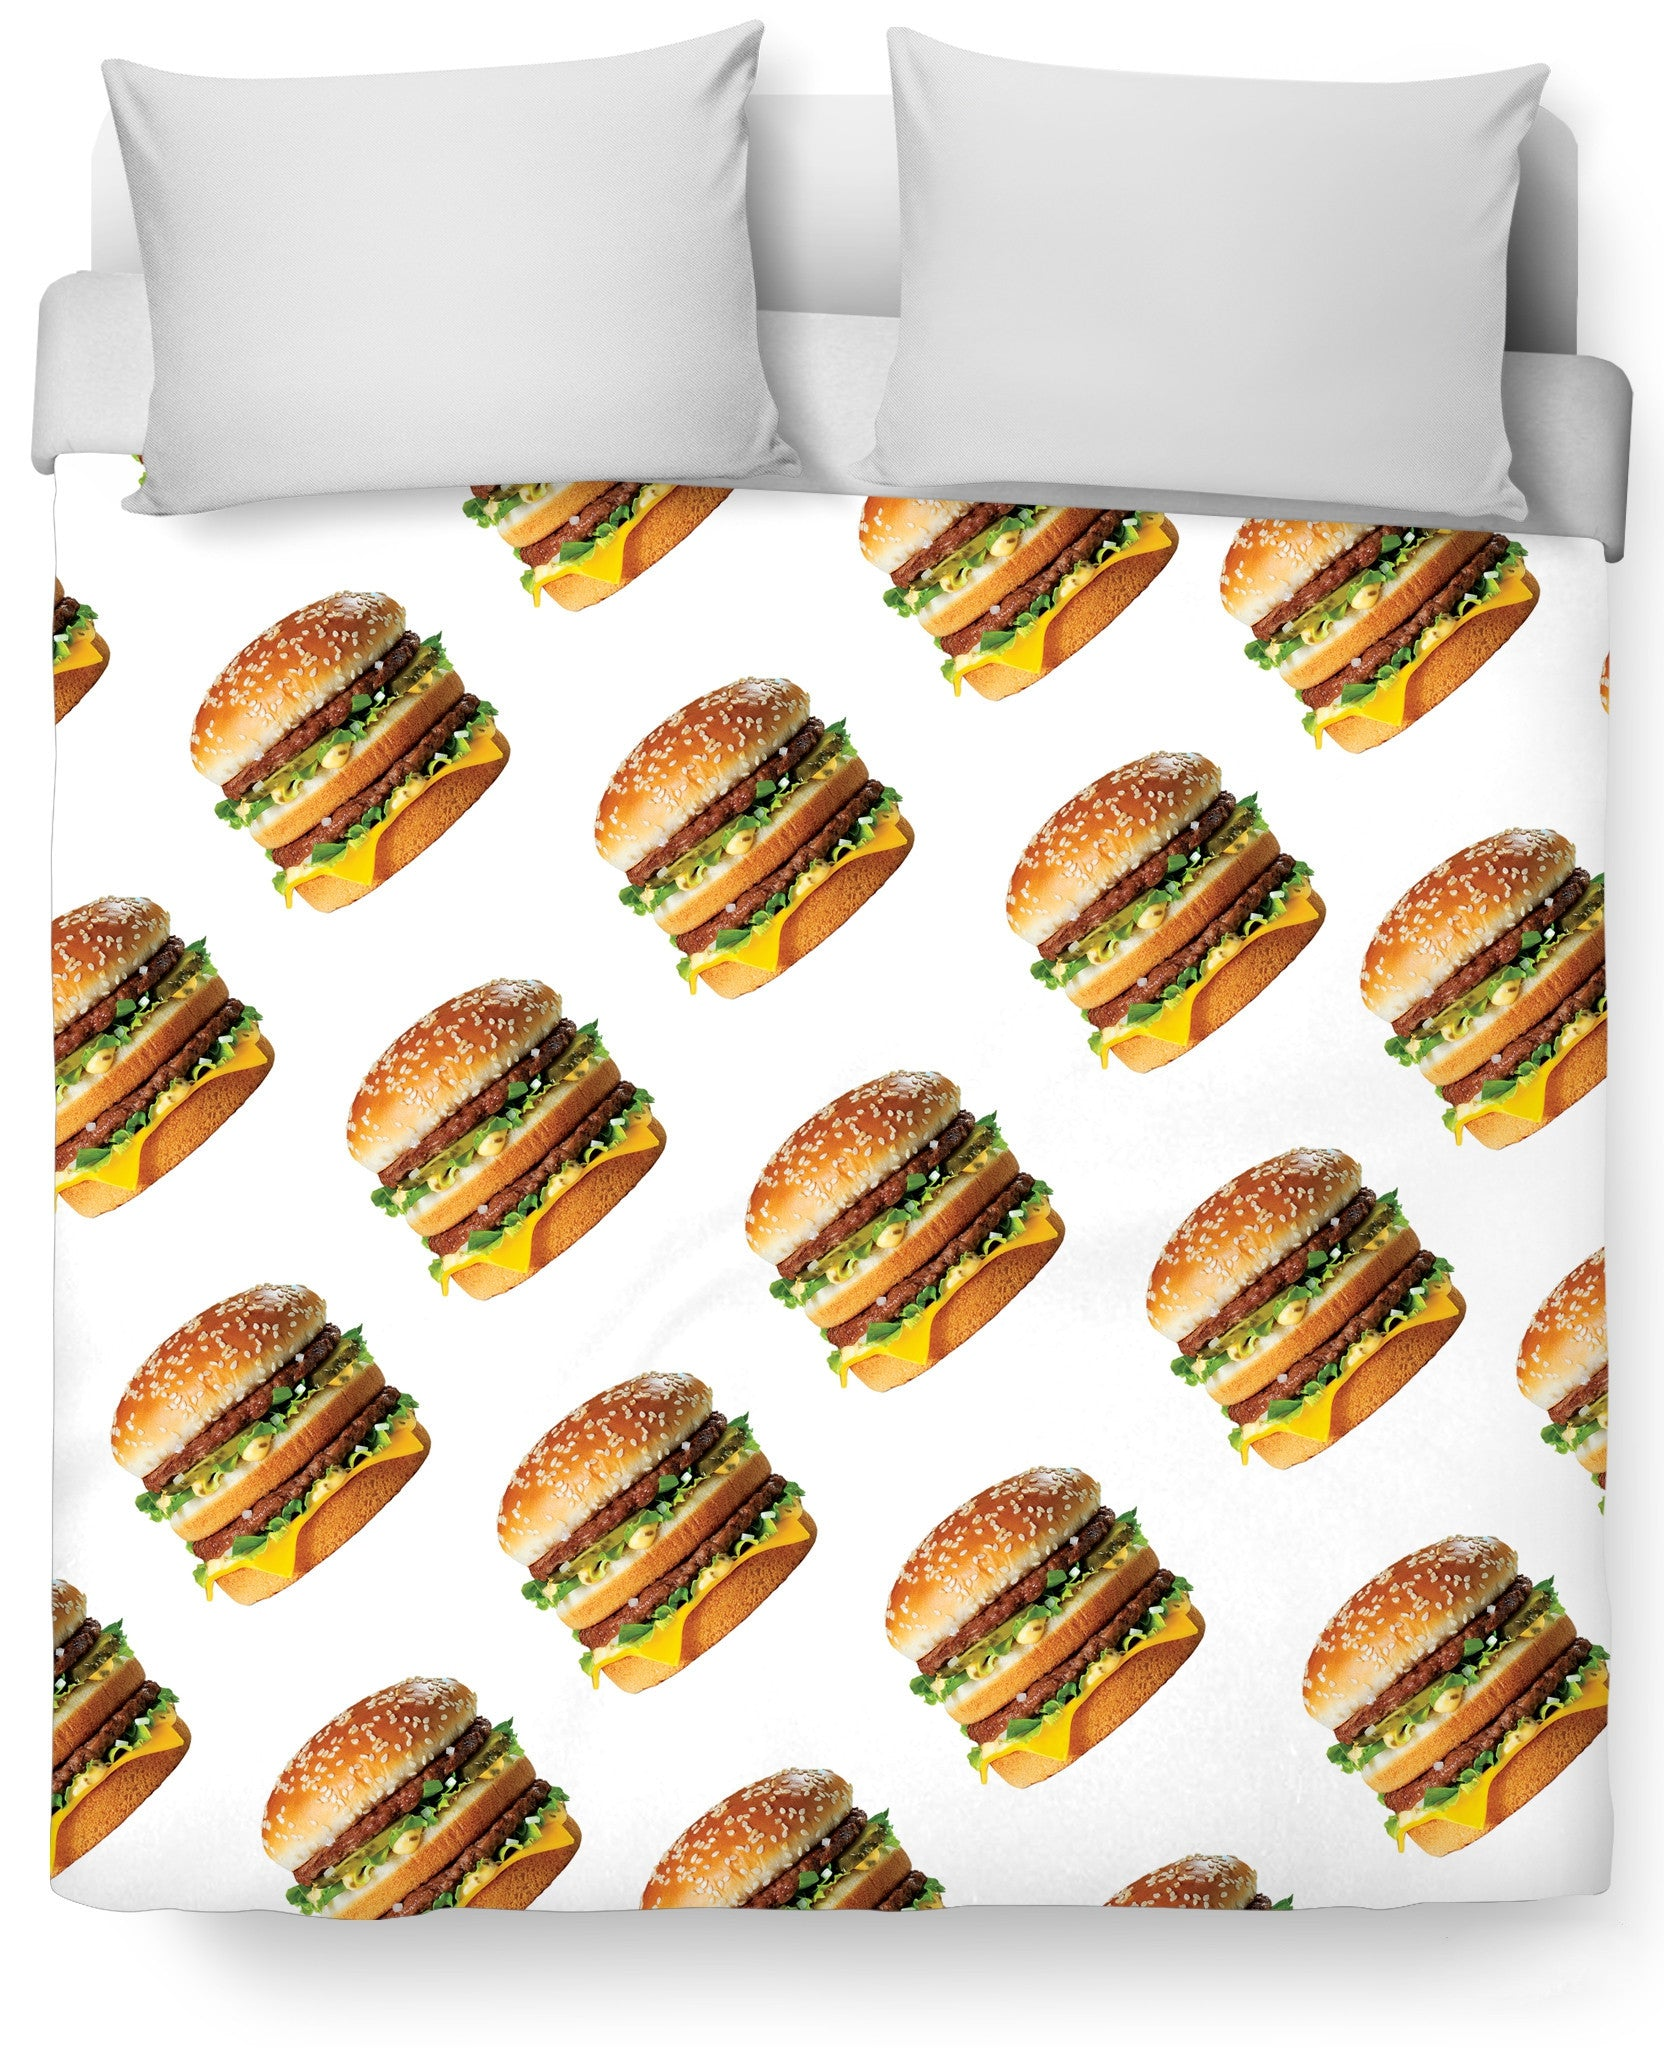 Big Mac Duvet Cover